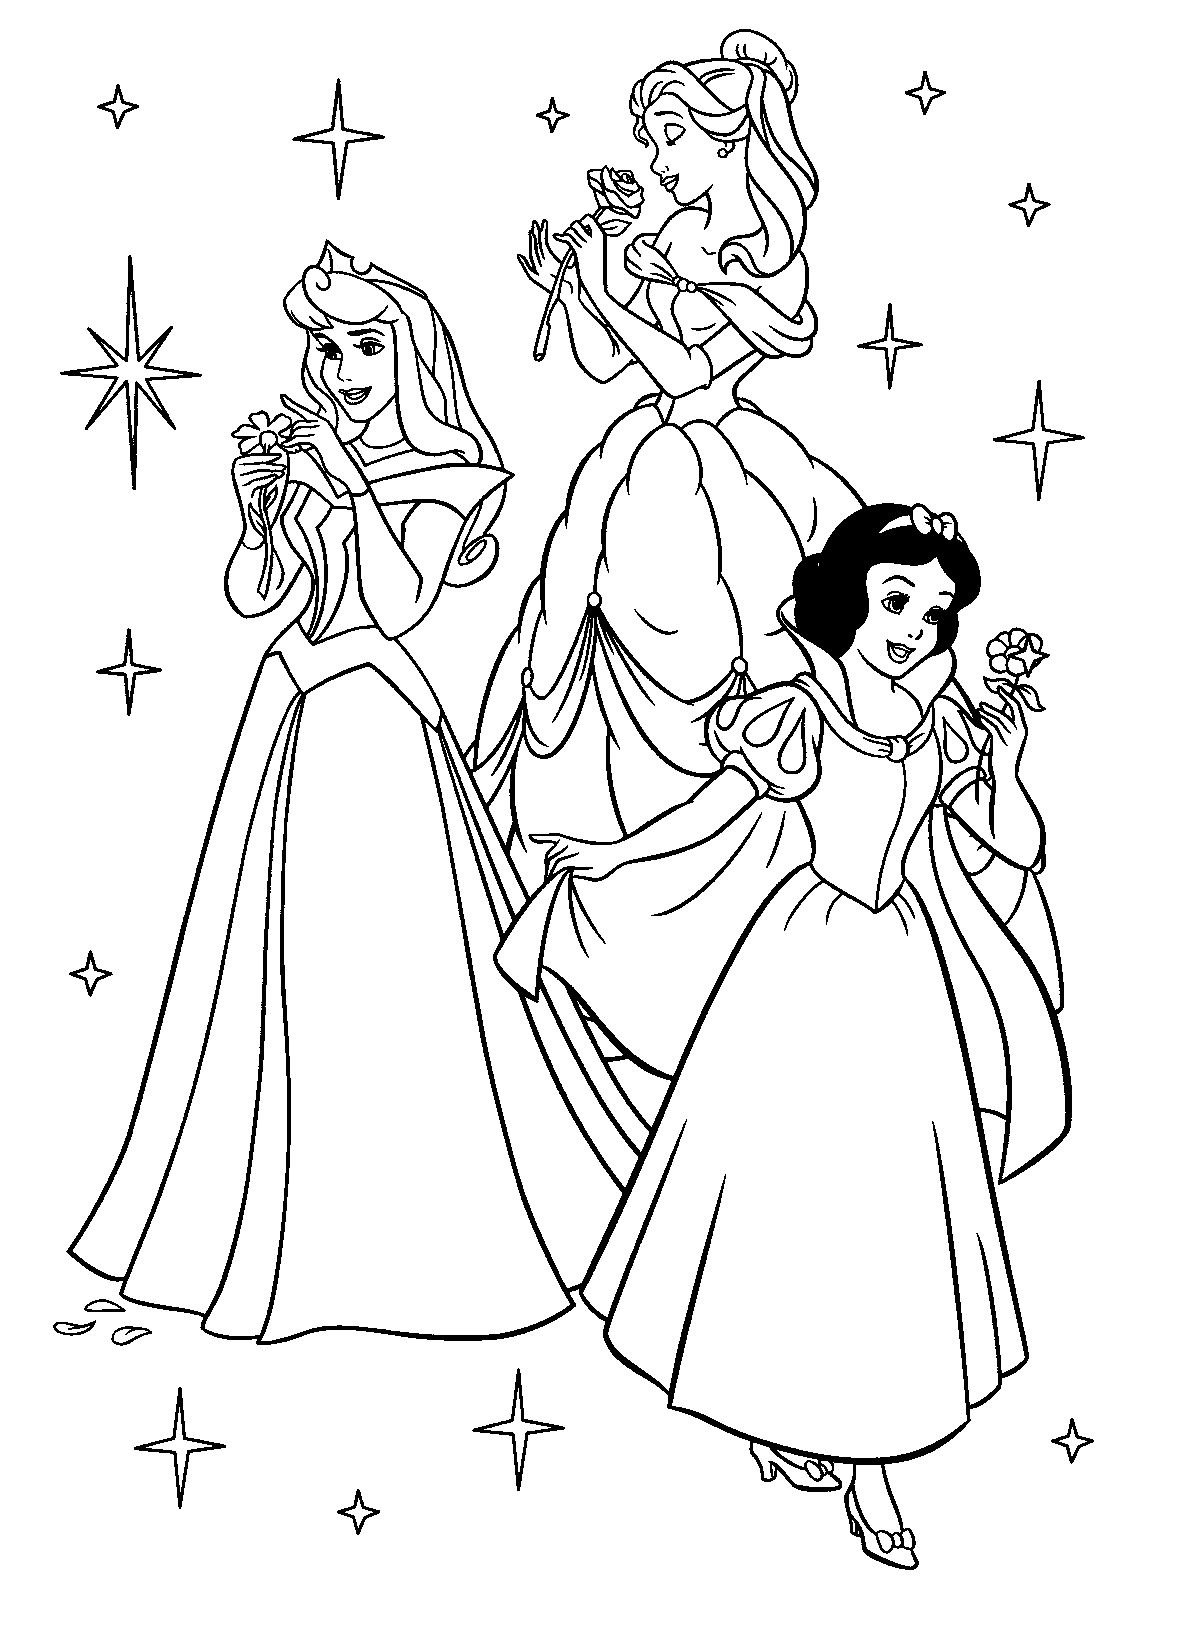 Free Printable Disney Princess Coloring Pages For Kids | Színezők - Free Printable Coloring Pages Of Disney Characters